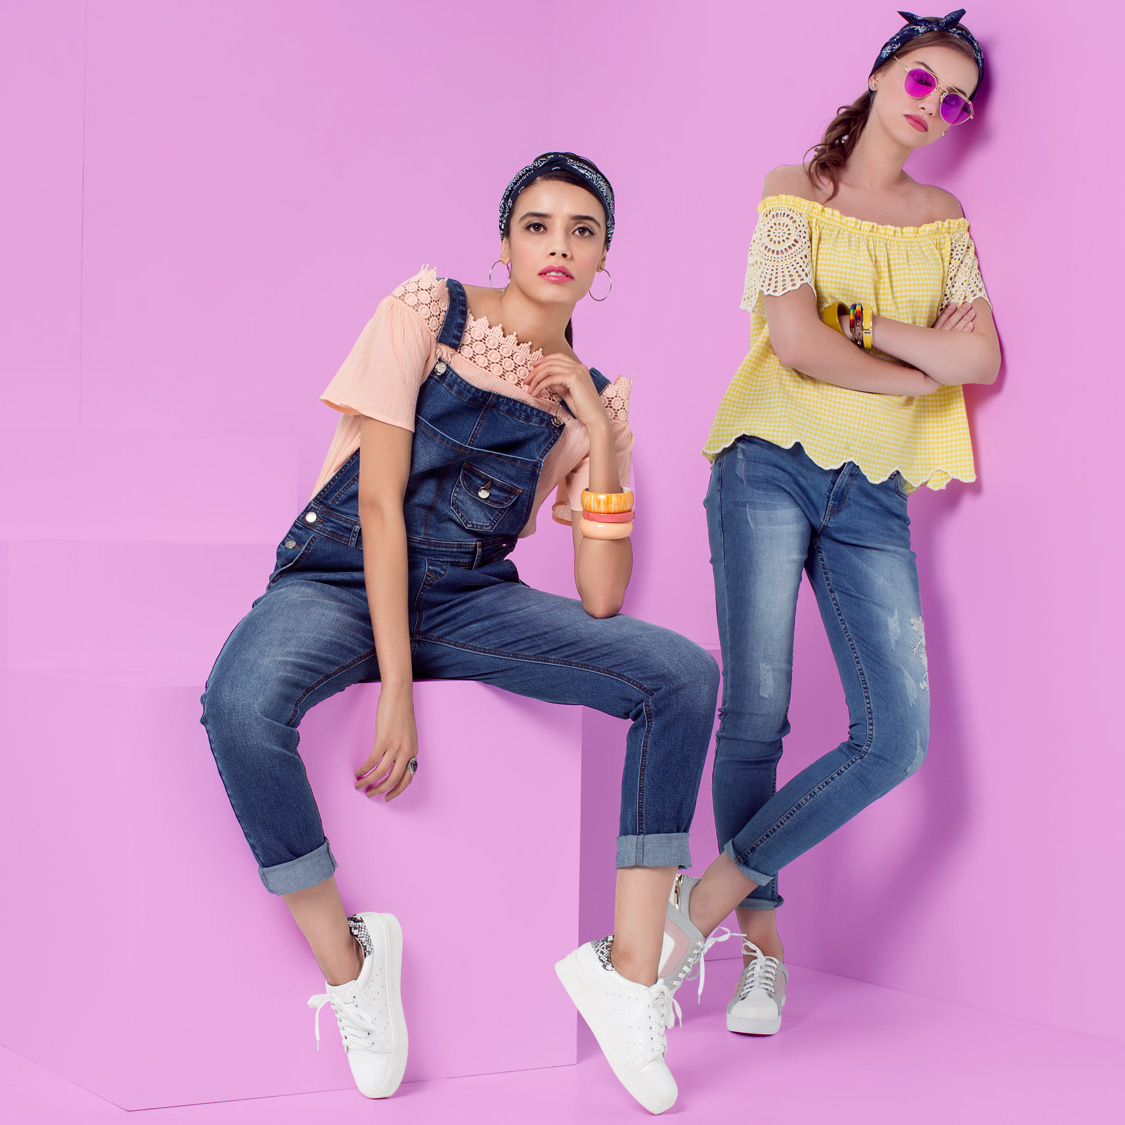 Two women, one wearing a pastel top & a dungaree and another one wearing yellow top with jeans